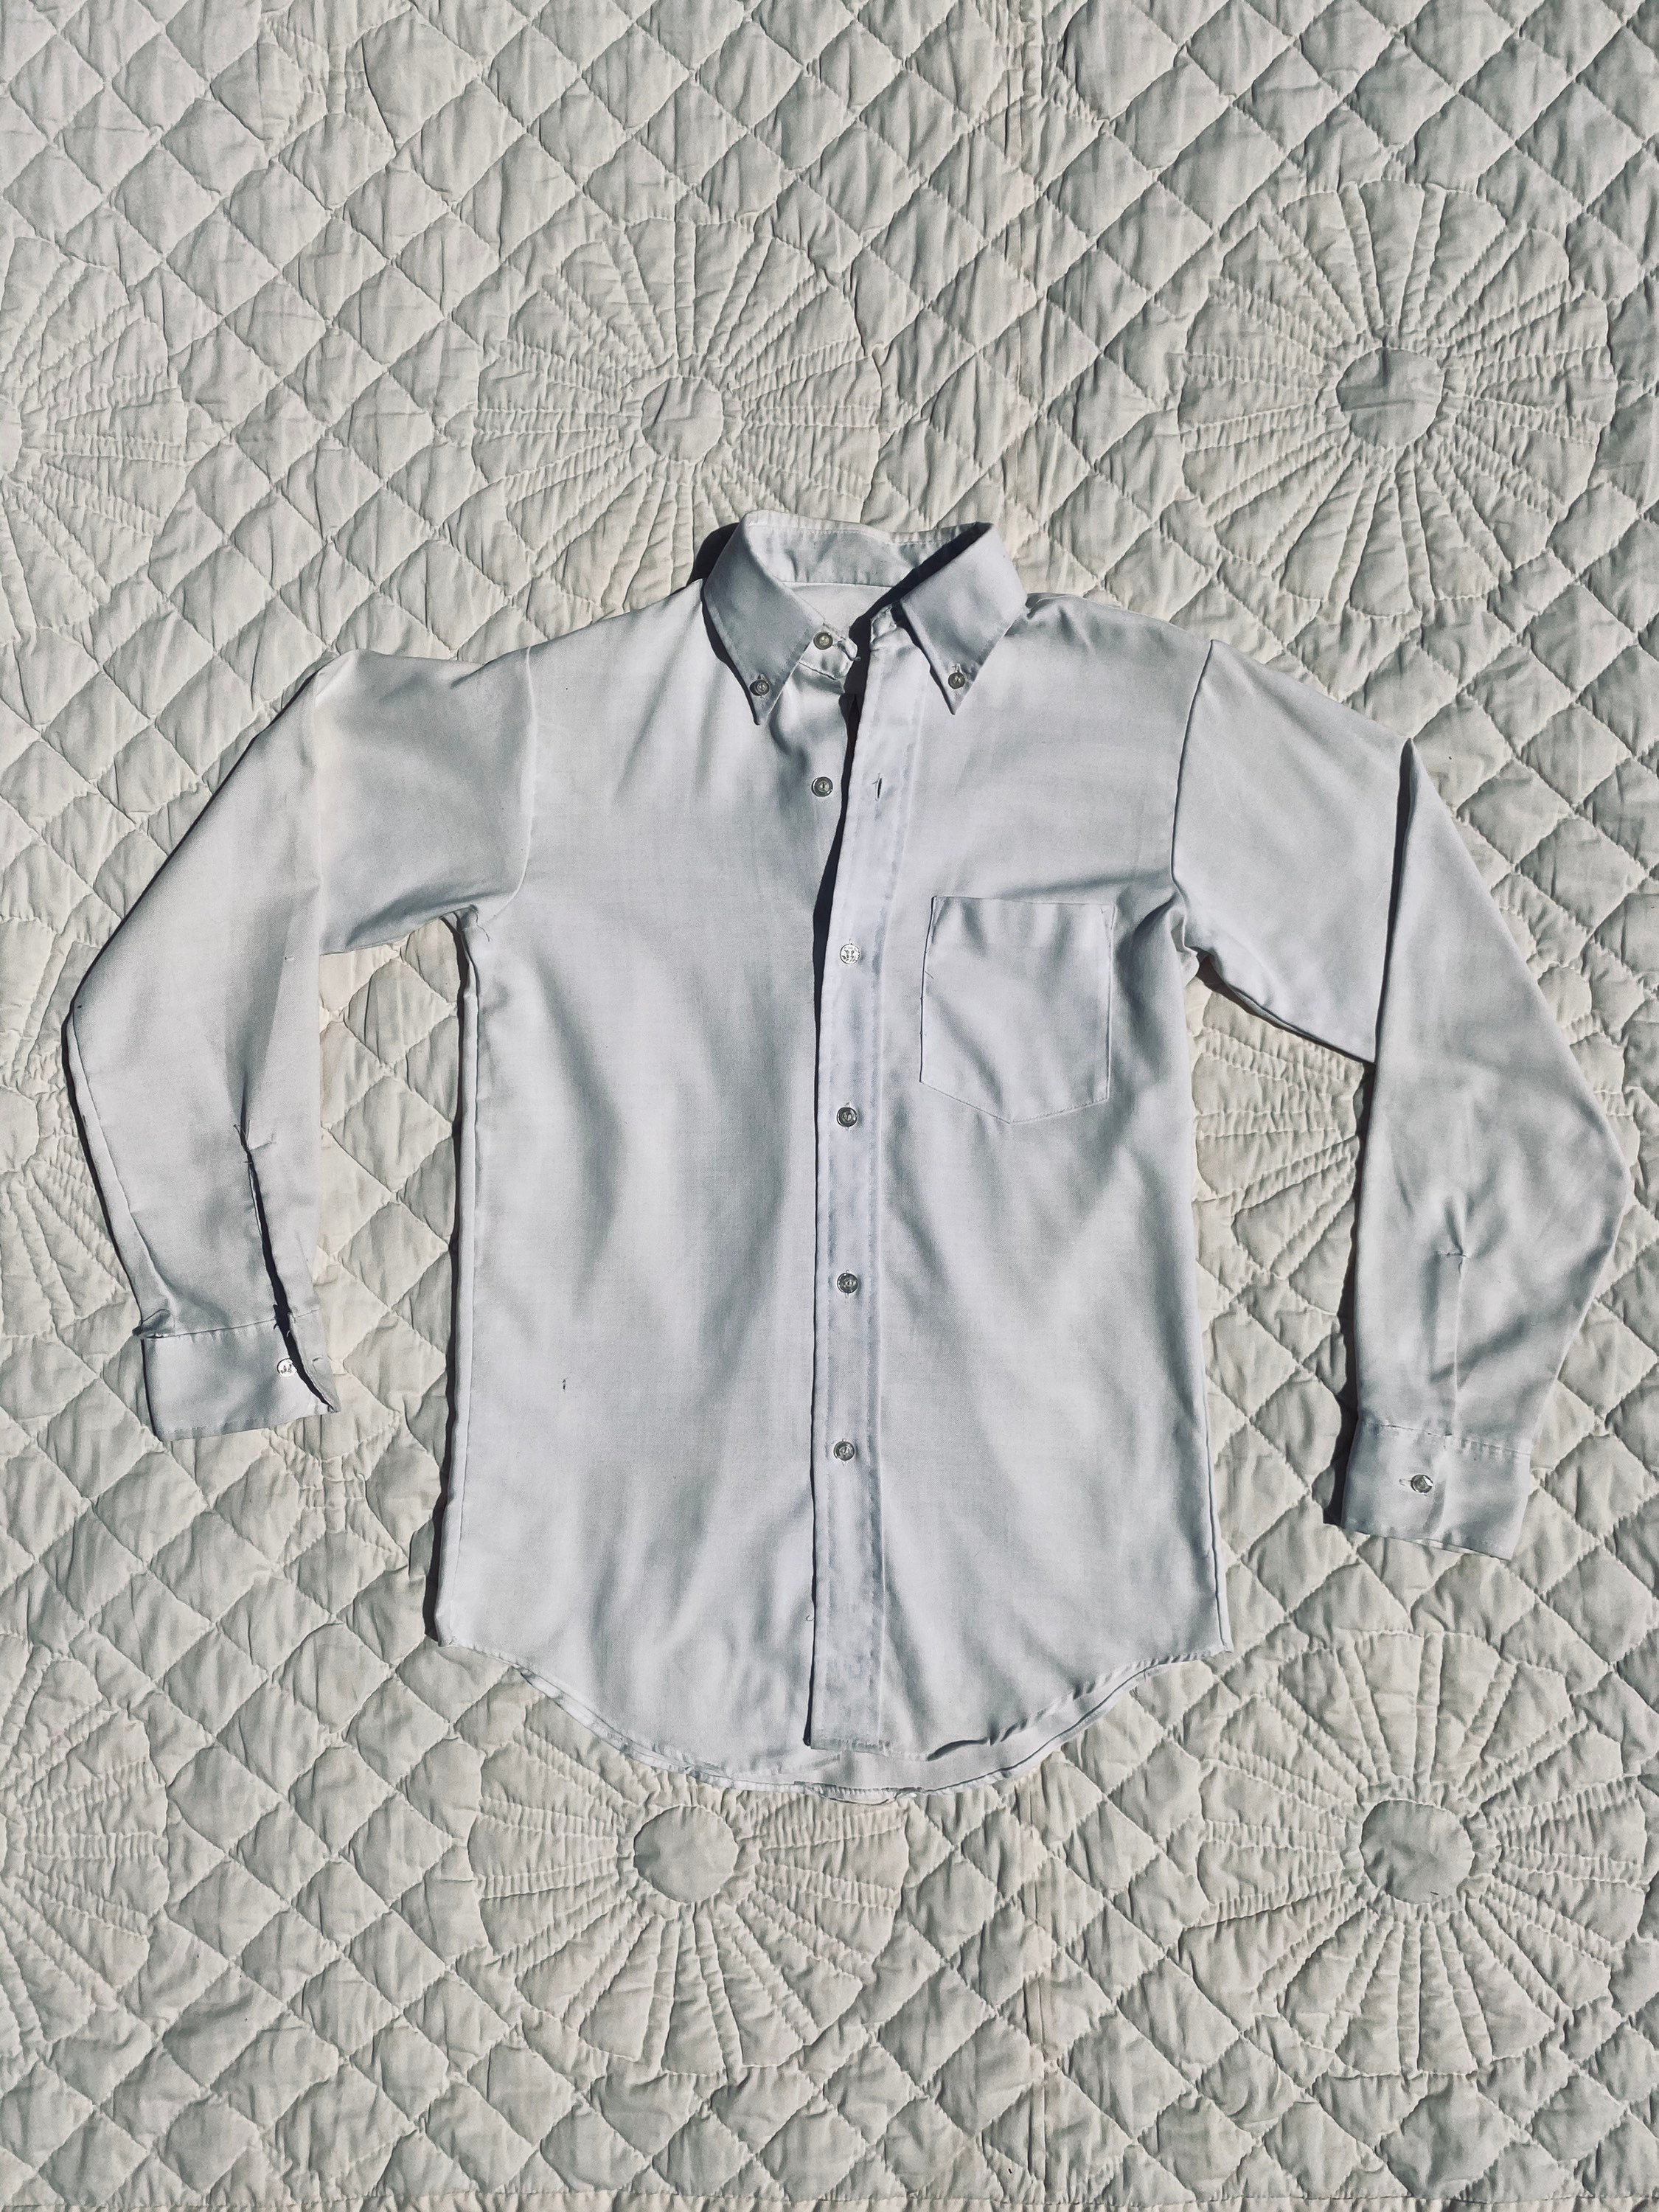 Men's 1920s Style Ties, Neck Ties & Bowties Antique 1920S Classic White Long Sleeved Button Down Cotton Dress Shirt Mens Small $0.00 AT vintagedancer.com